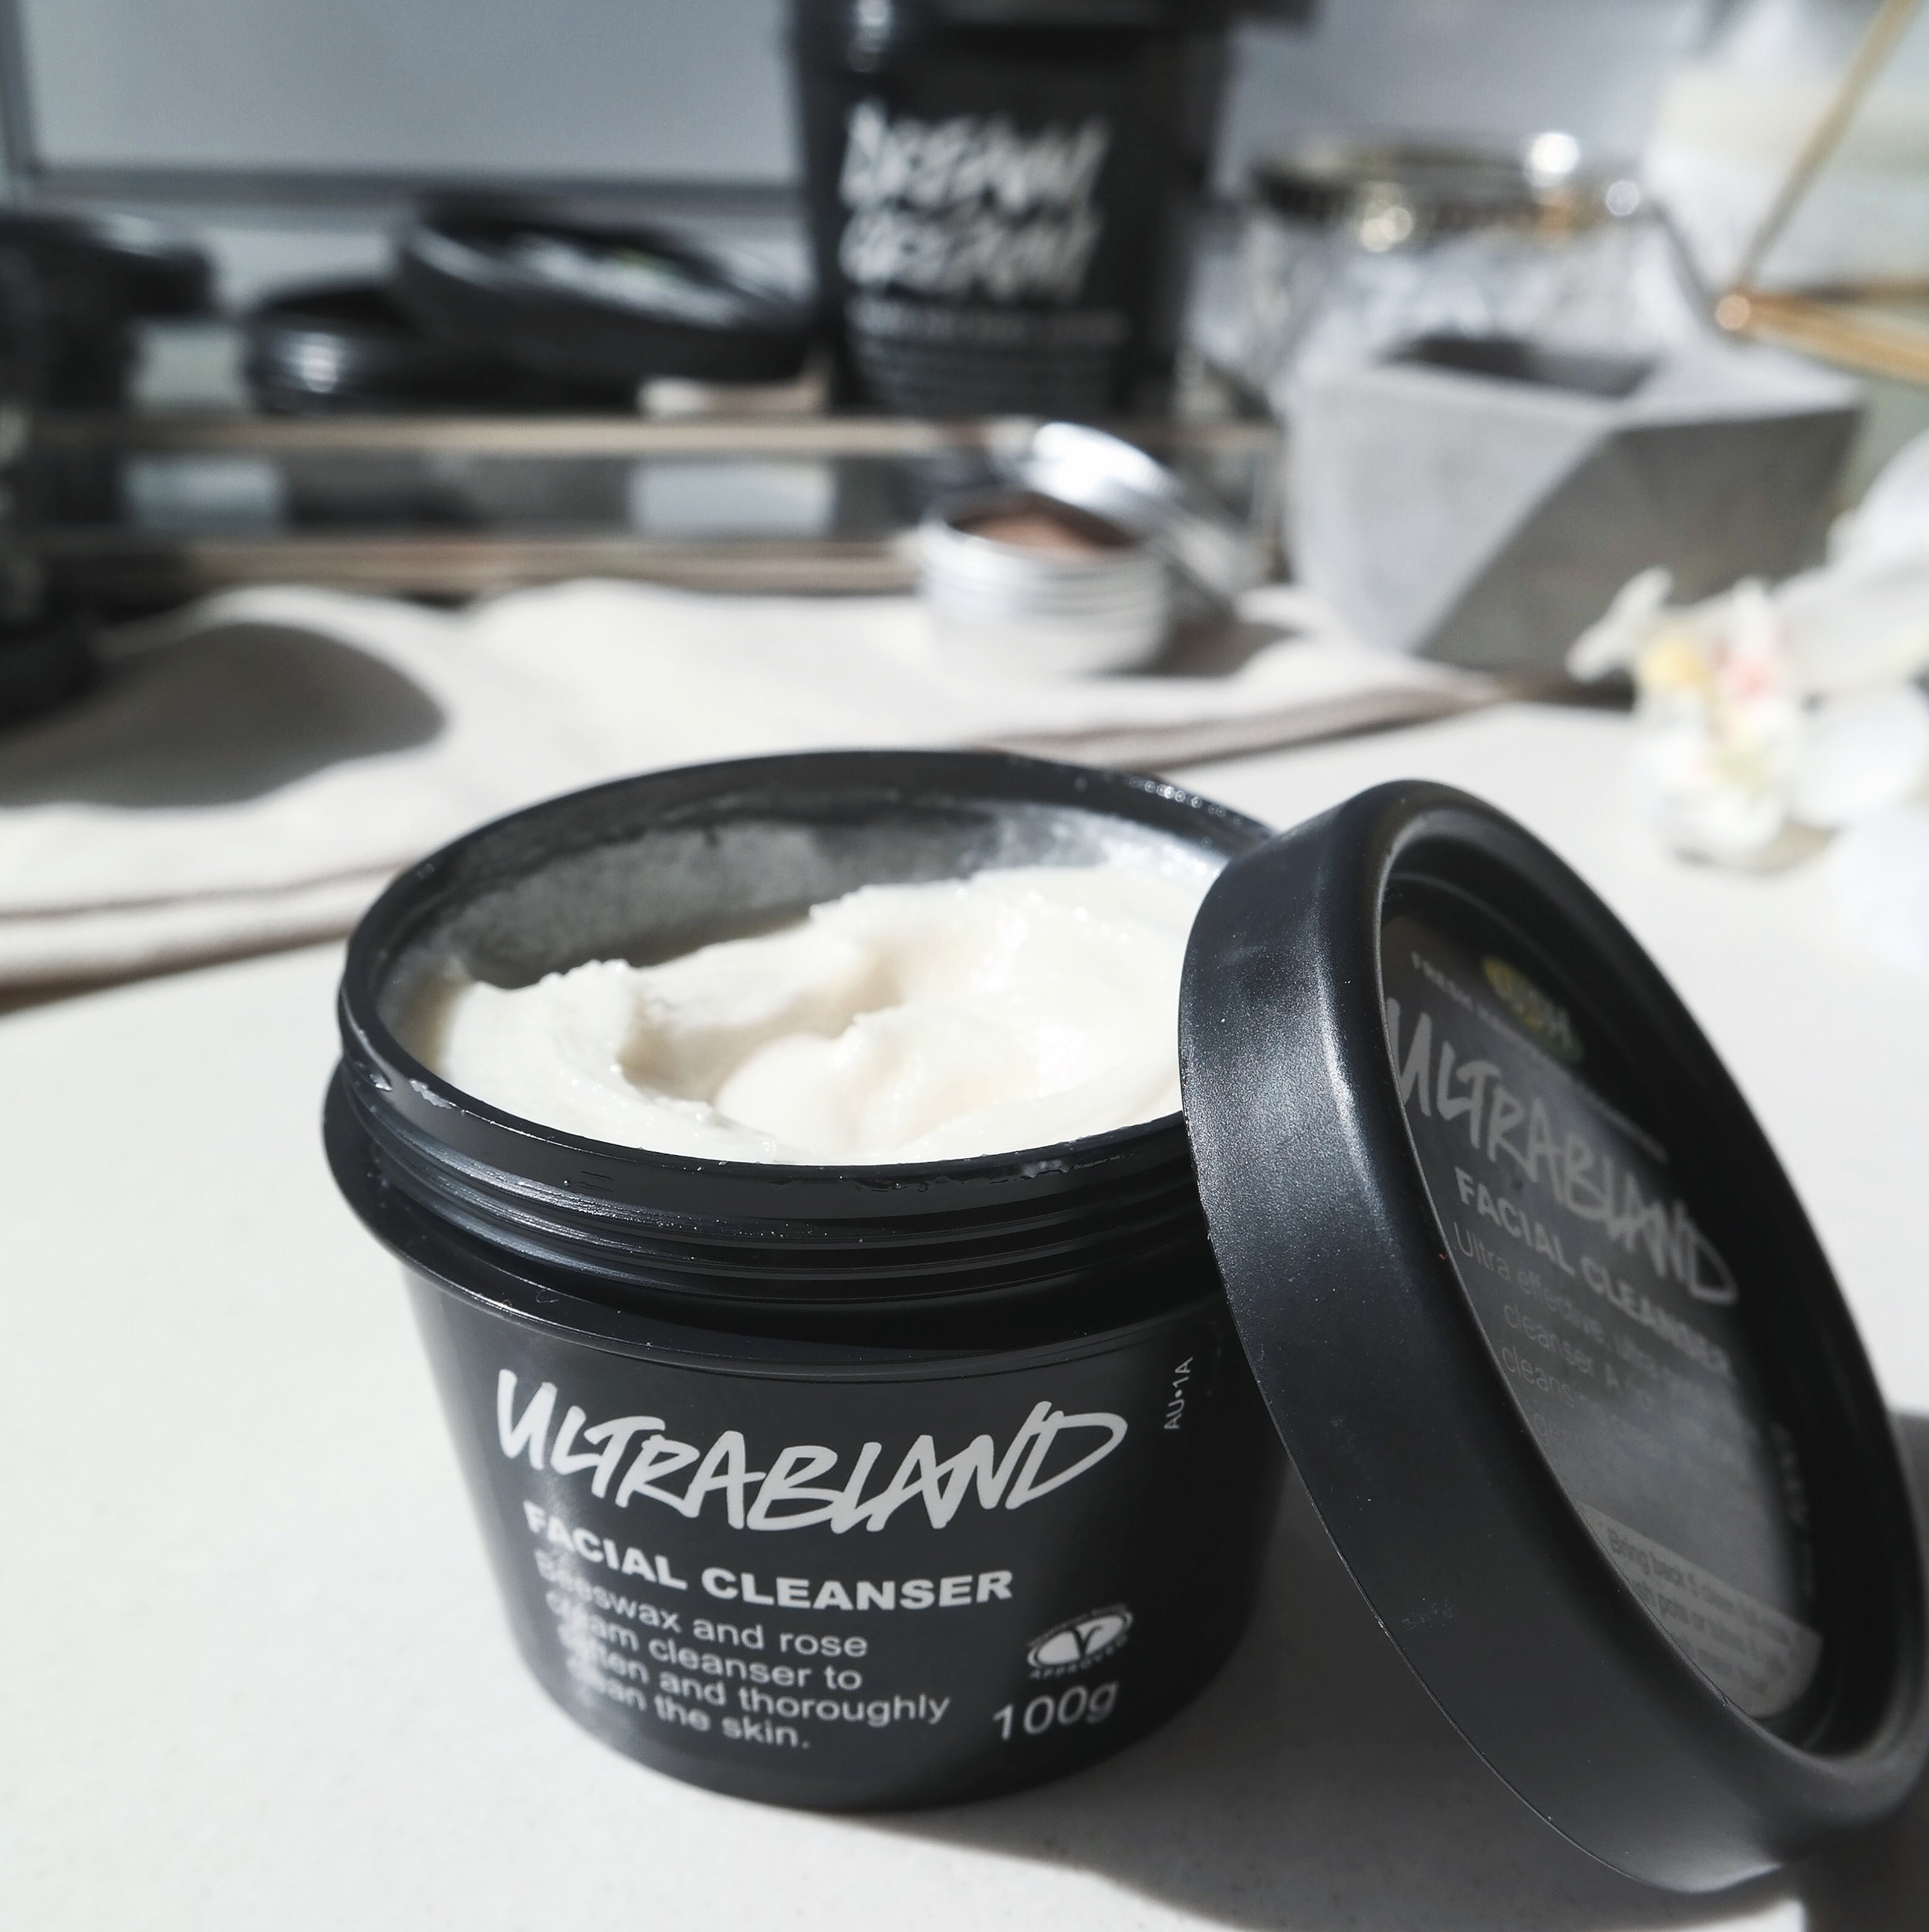 Ultrabland Lush Review